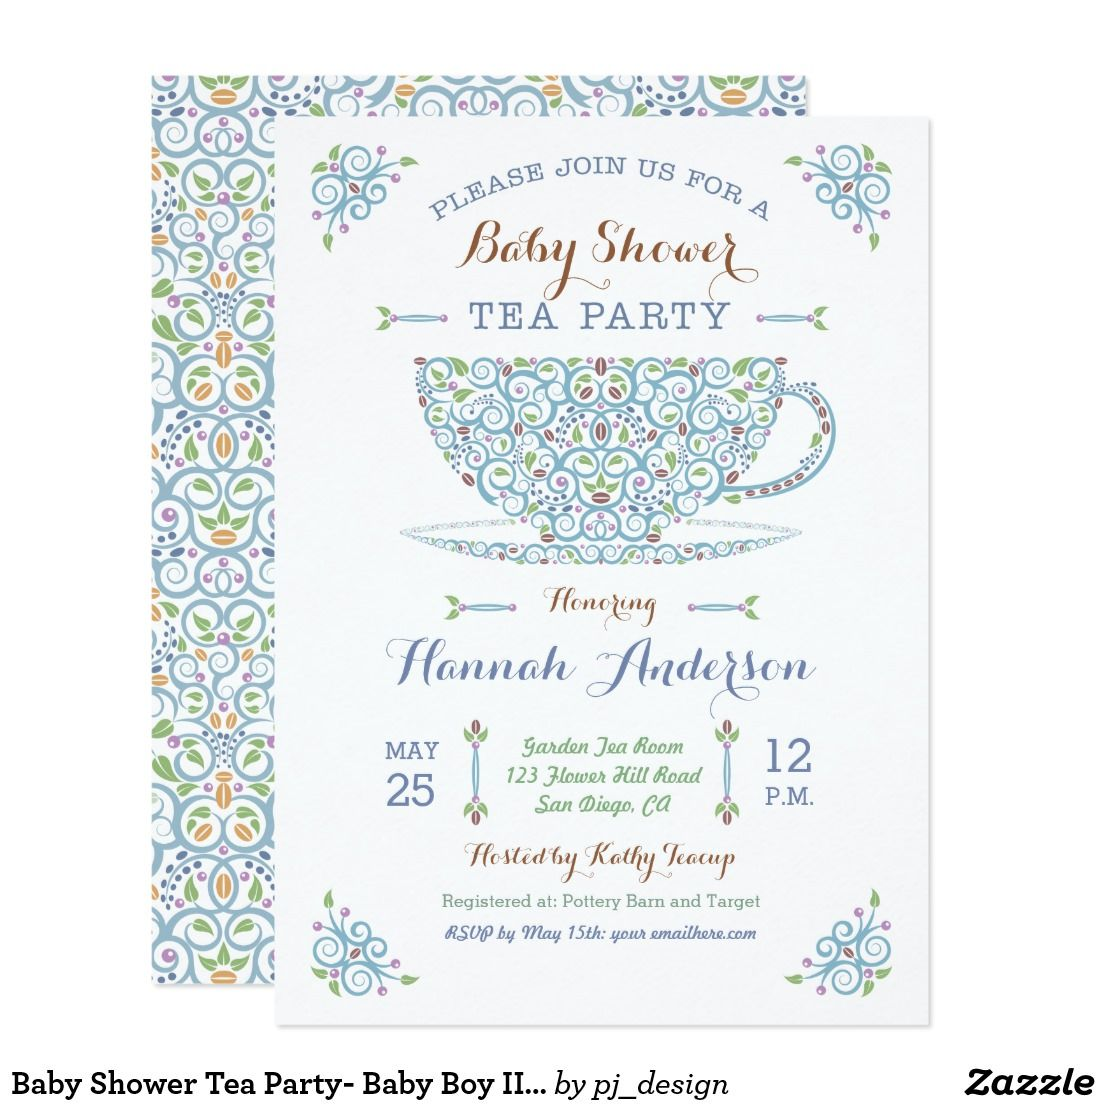 Baby Shower Tea Party- Baby Boy II Invitation | Baby shower tea, Tea ...